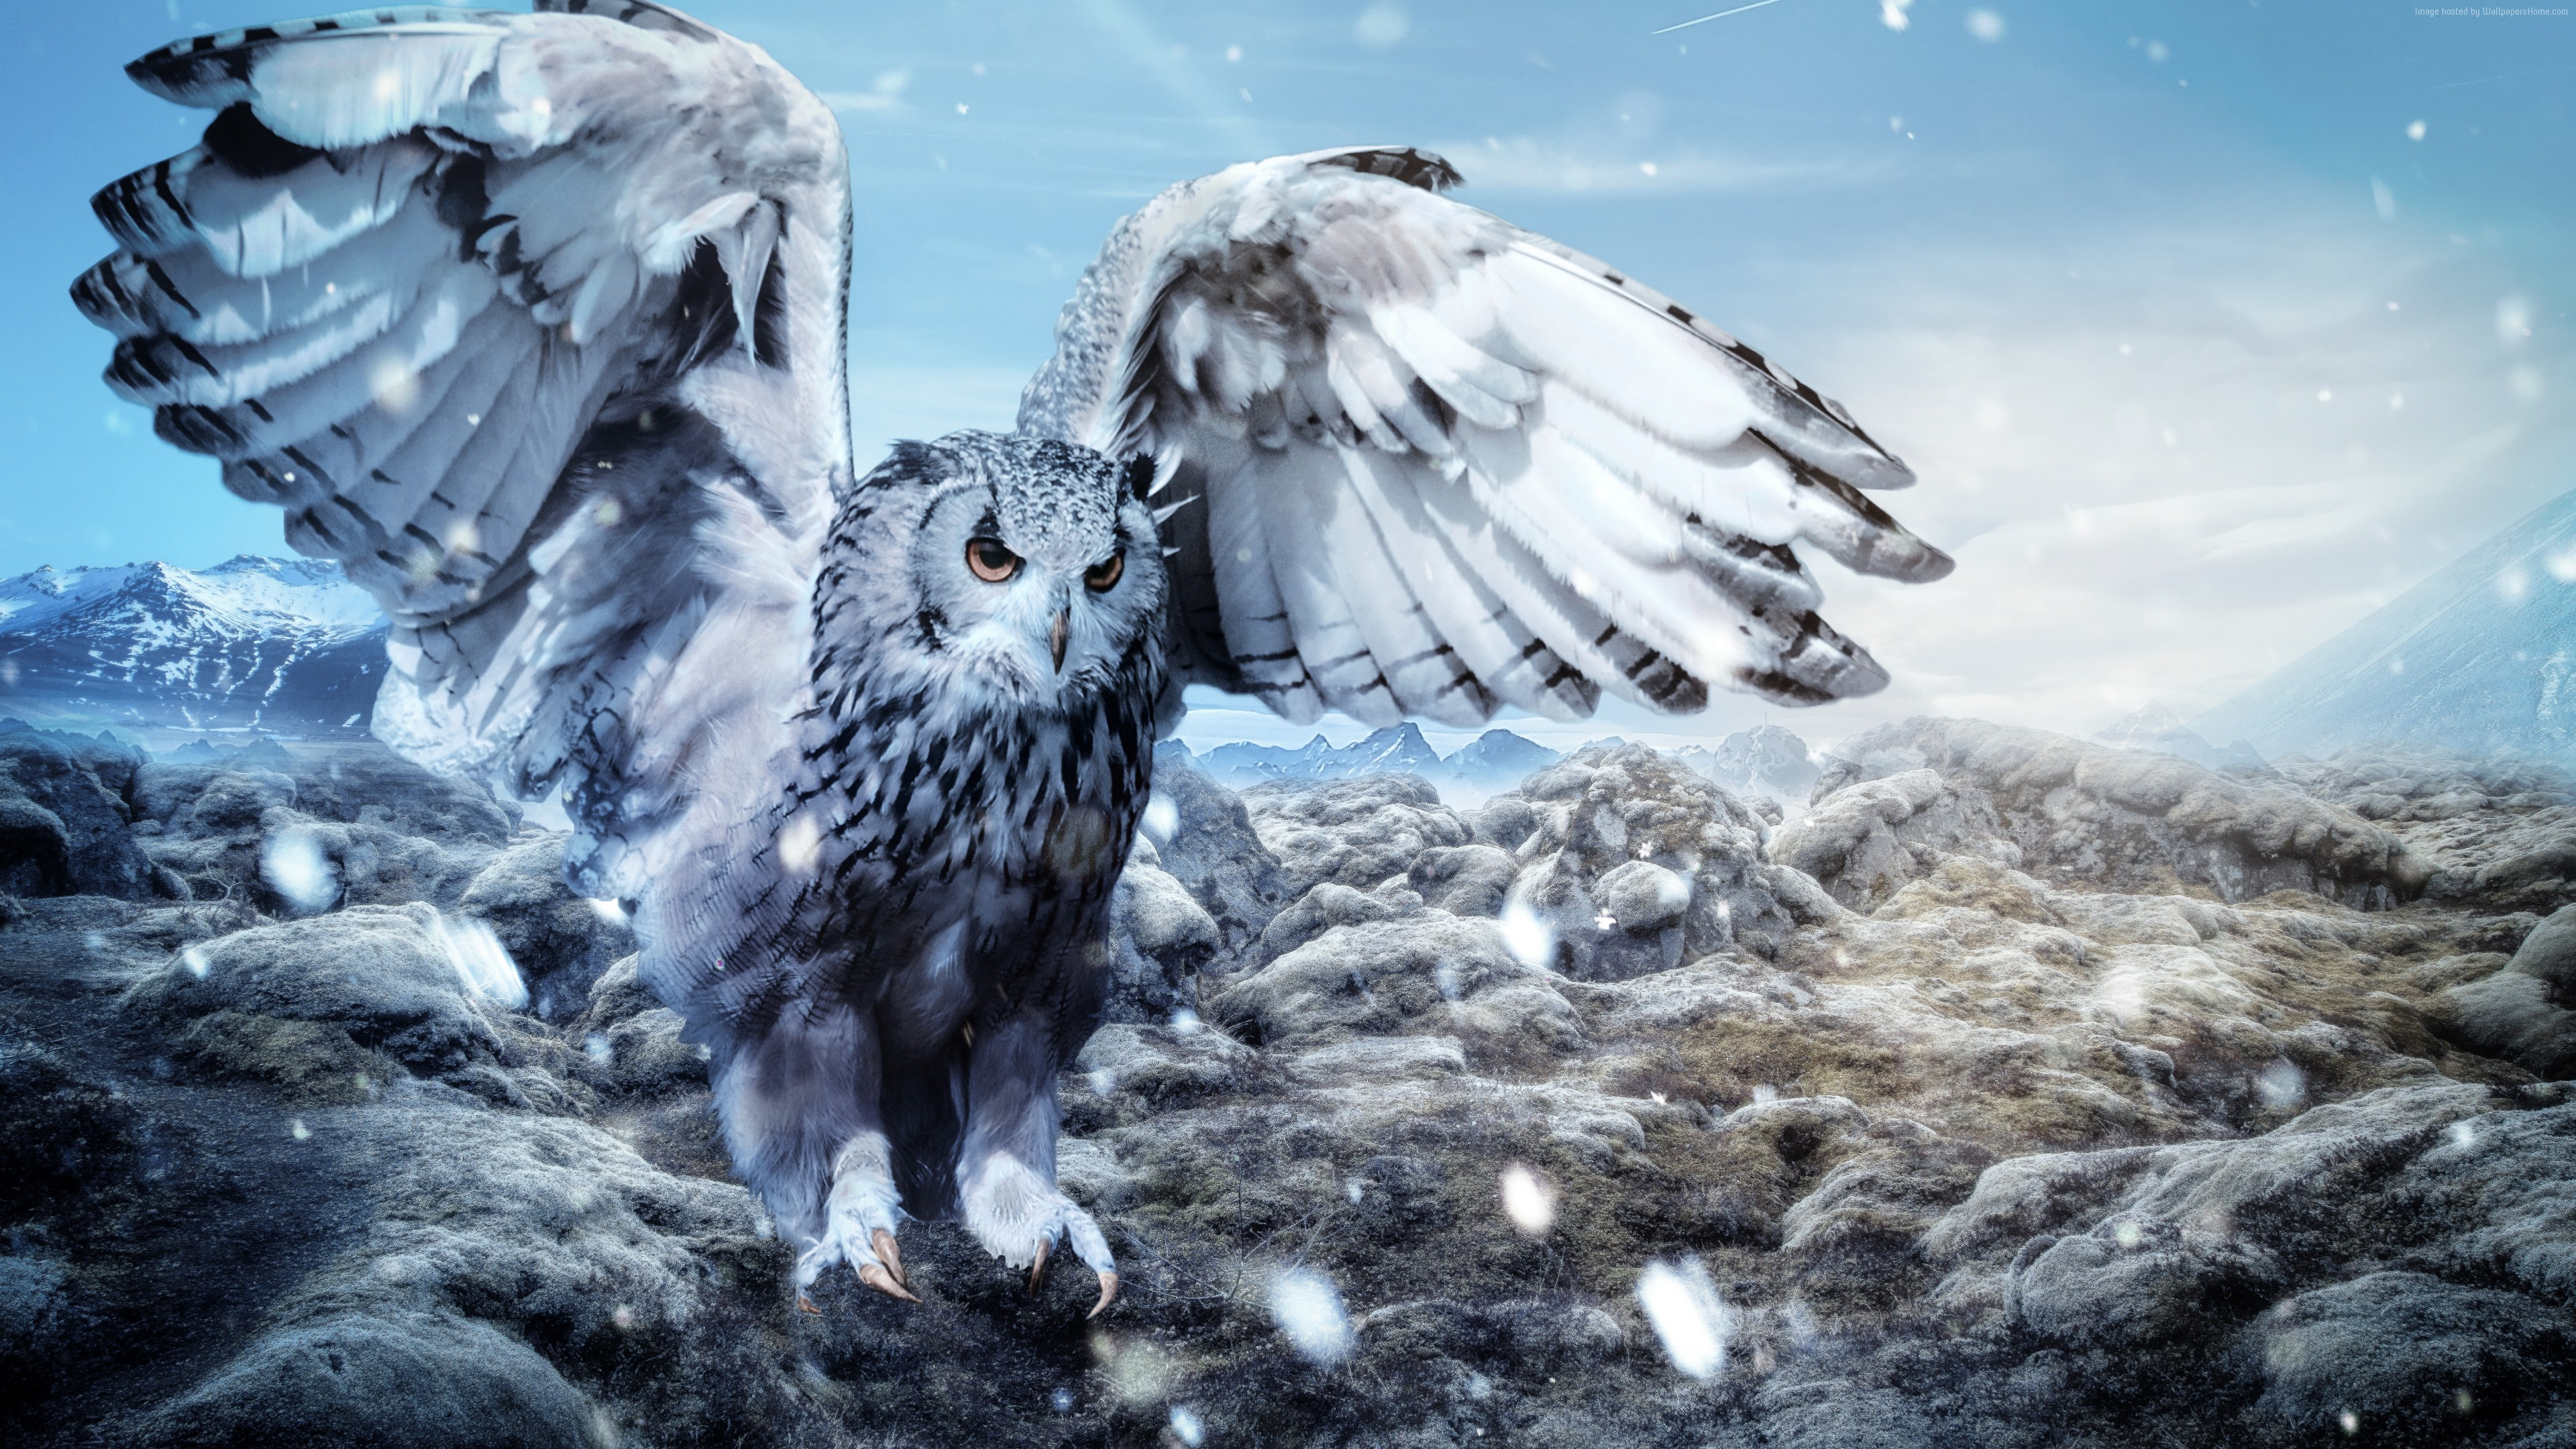 Wallpaper owl, mountains, snow, winter, 5k, Animals